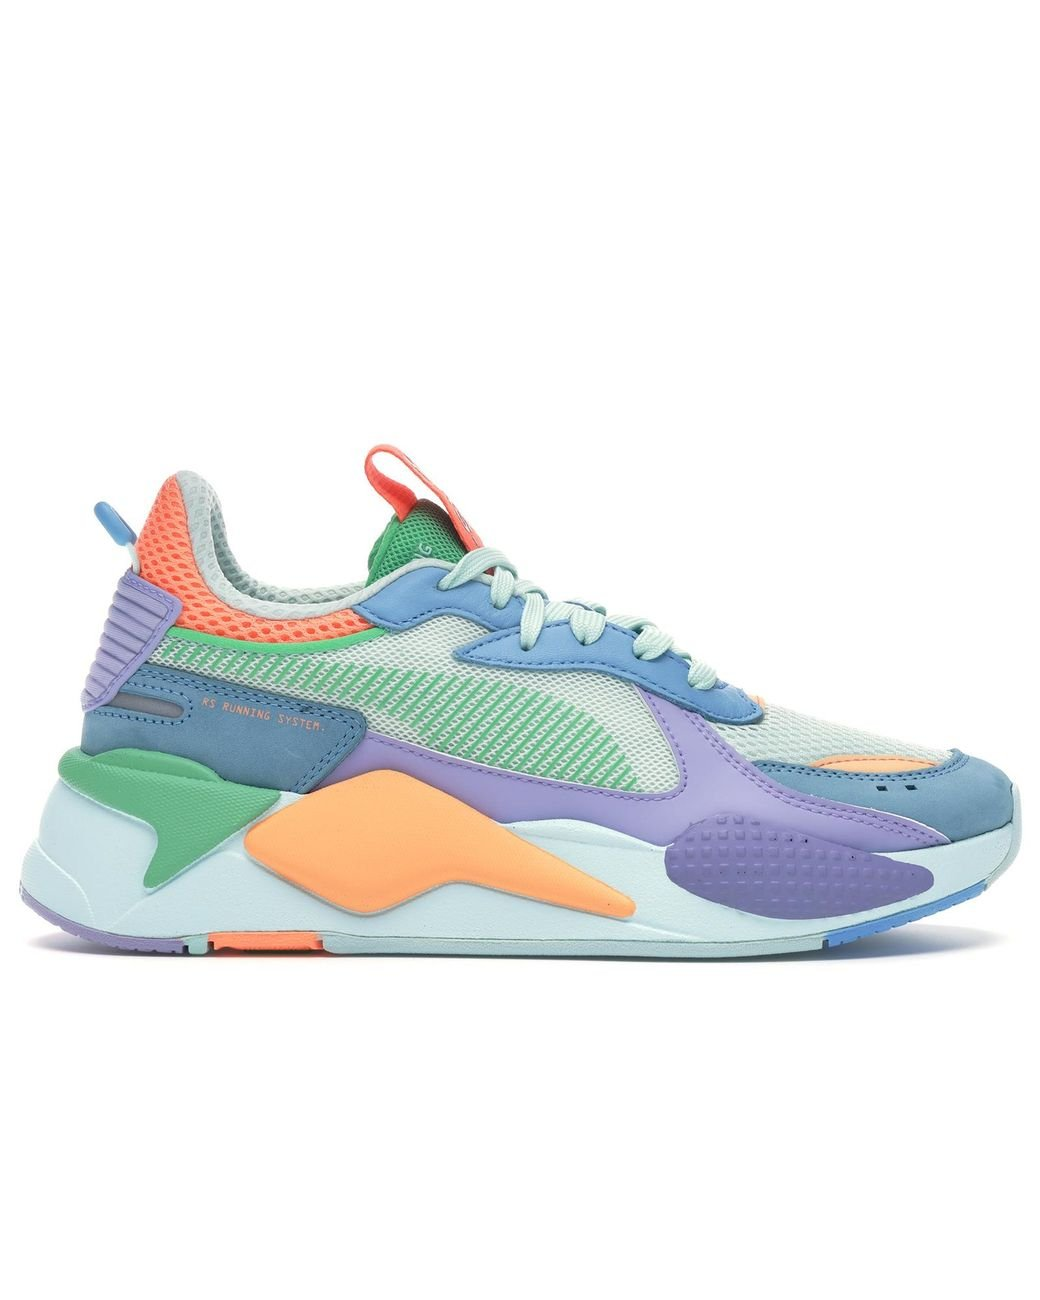 PUMA Rubber Rs-x Toys in Green/Blue